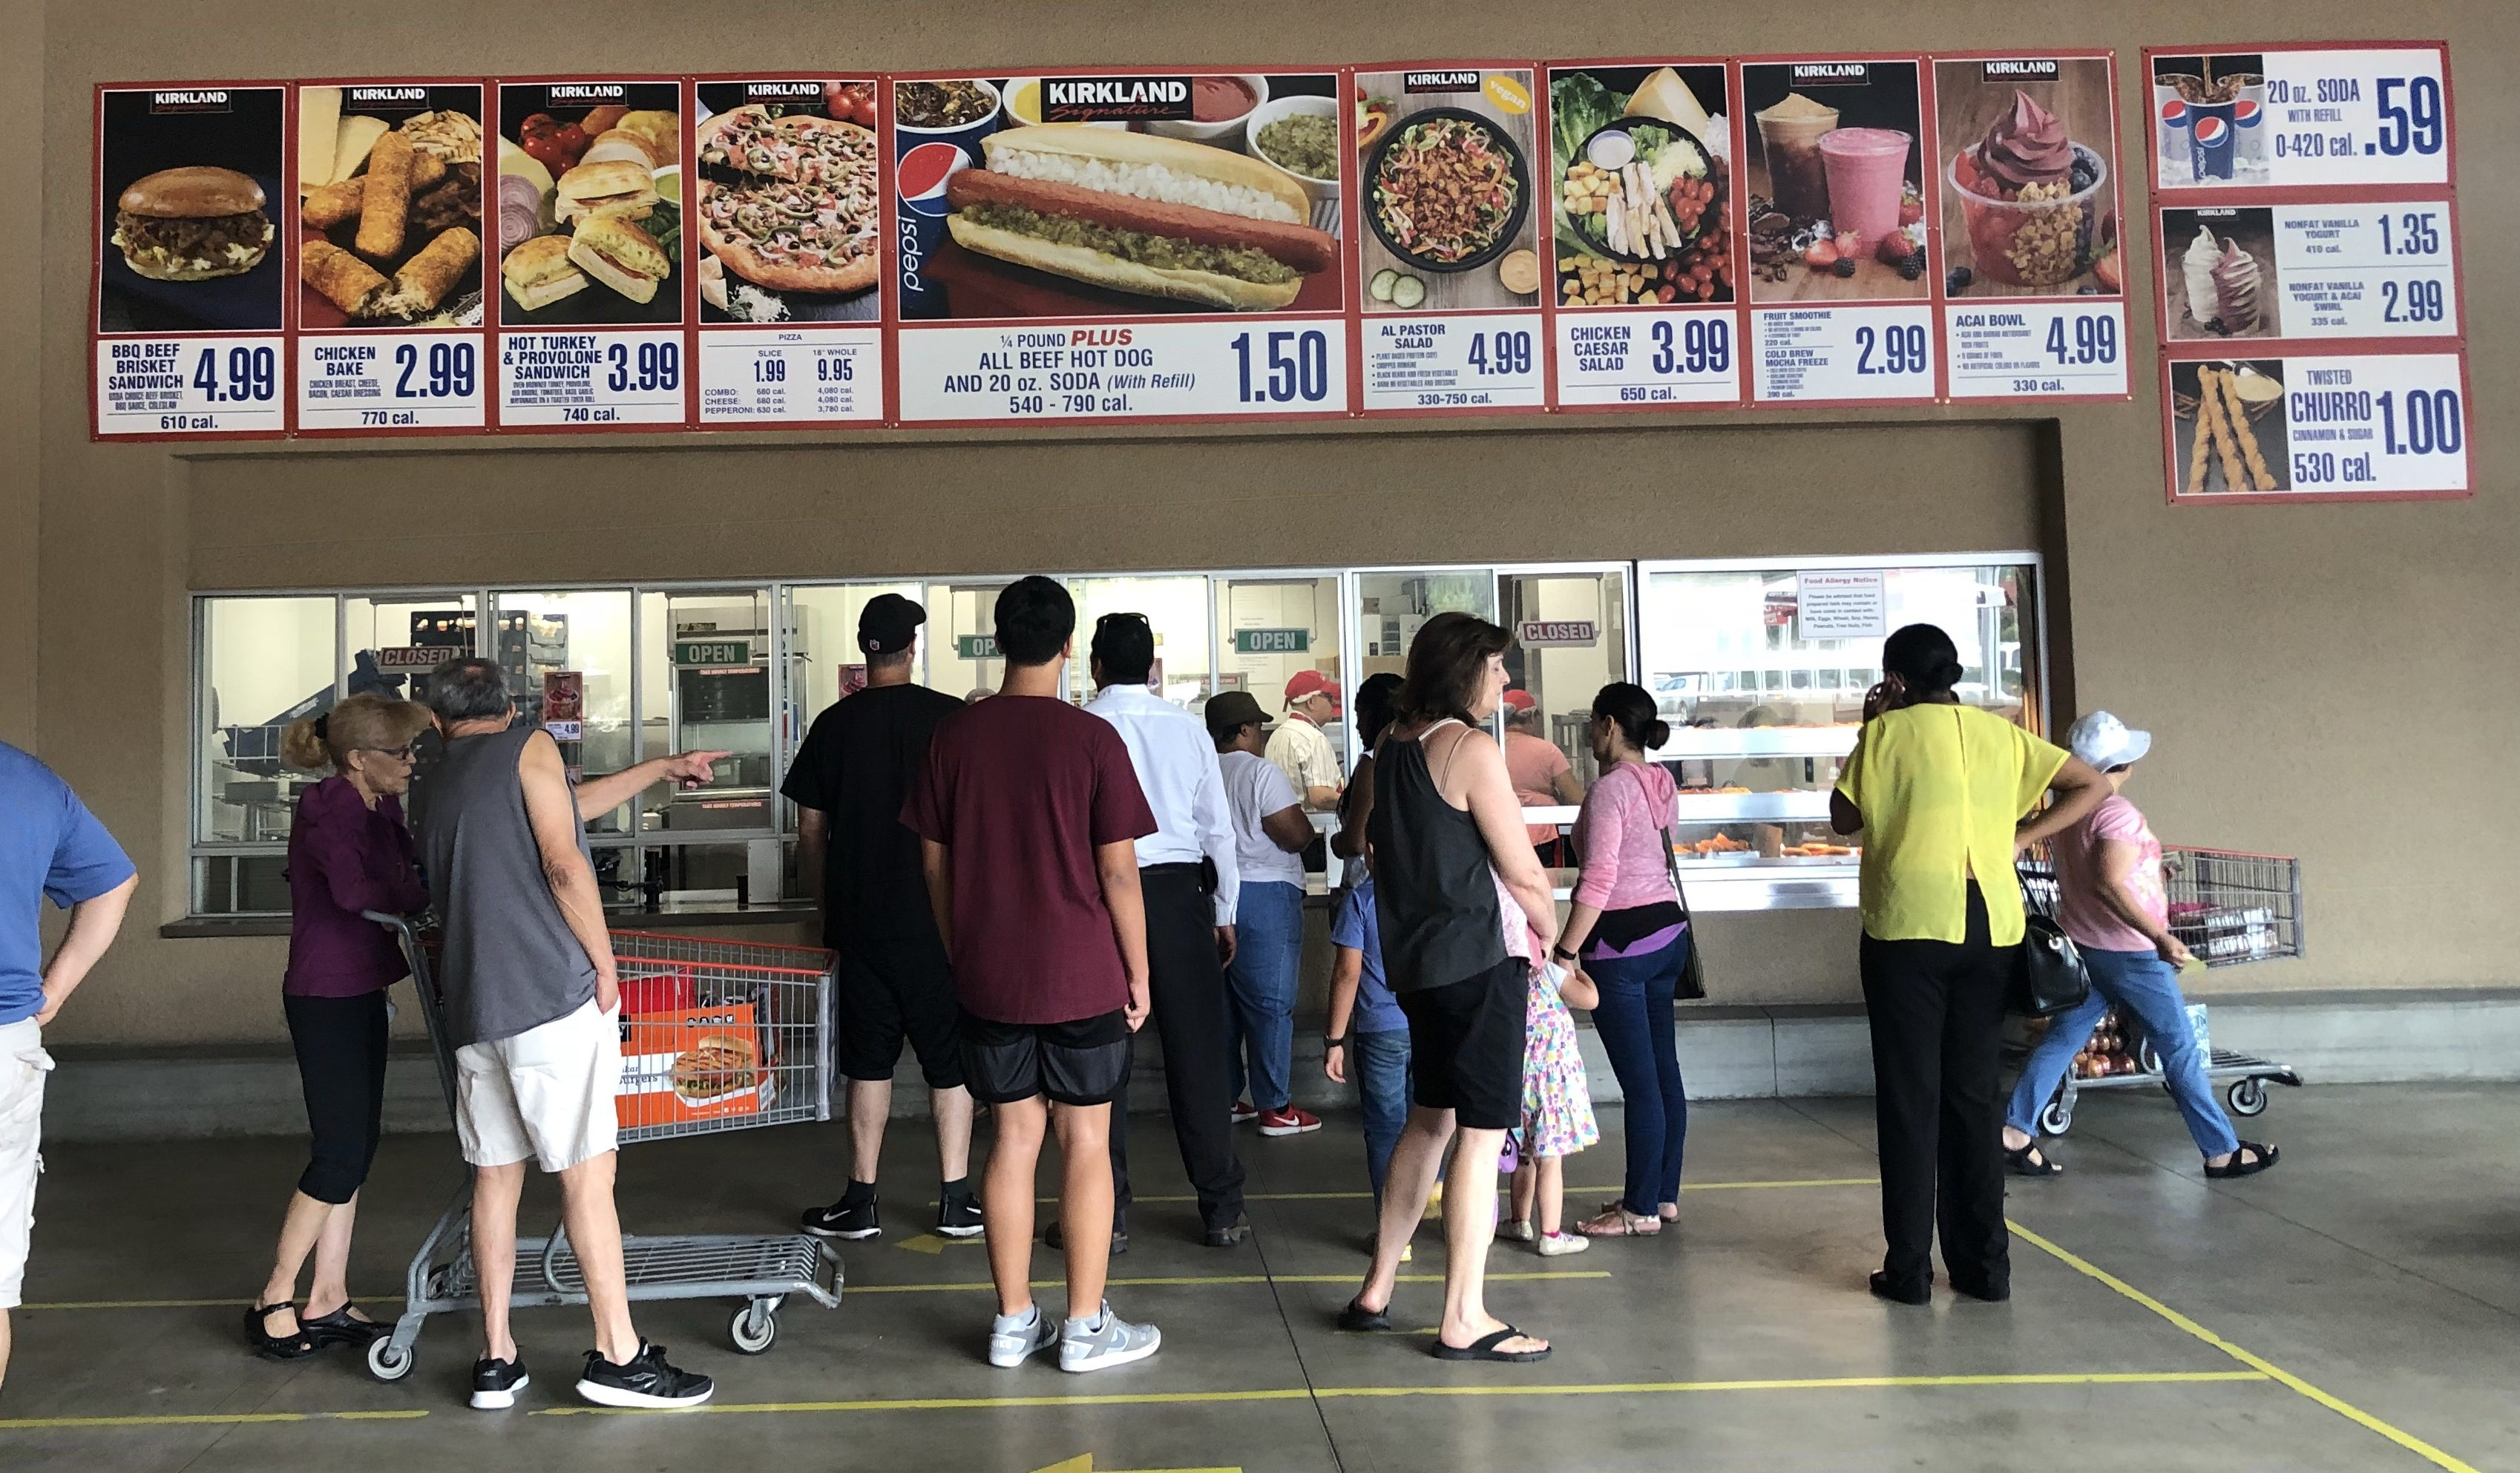 Costco pulls the polish hot dog from their menu of their food court like this one